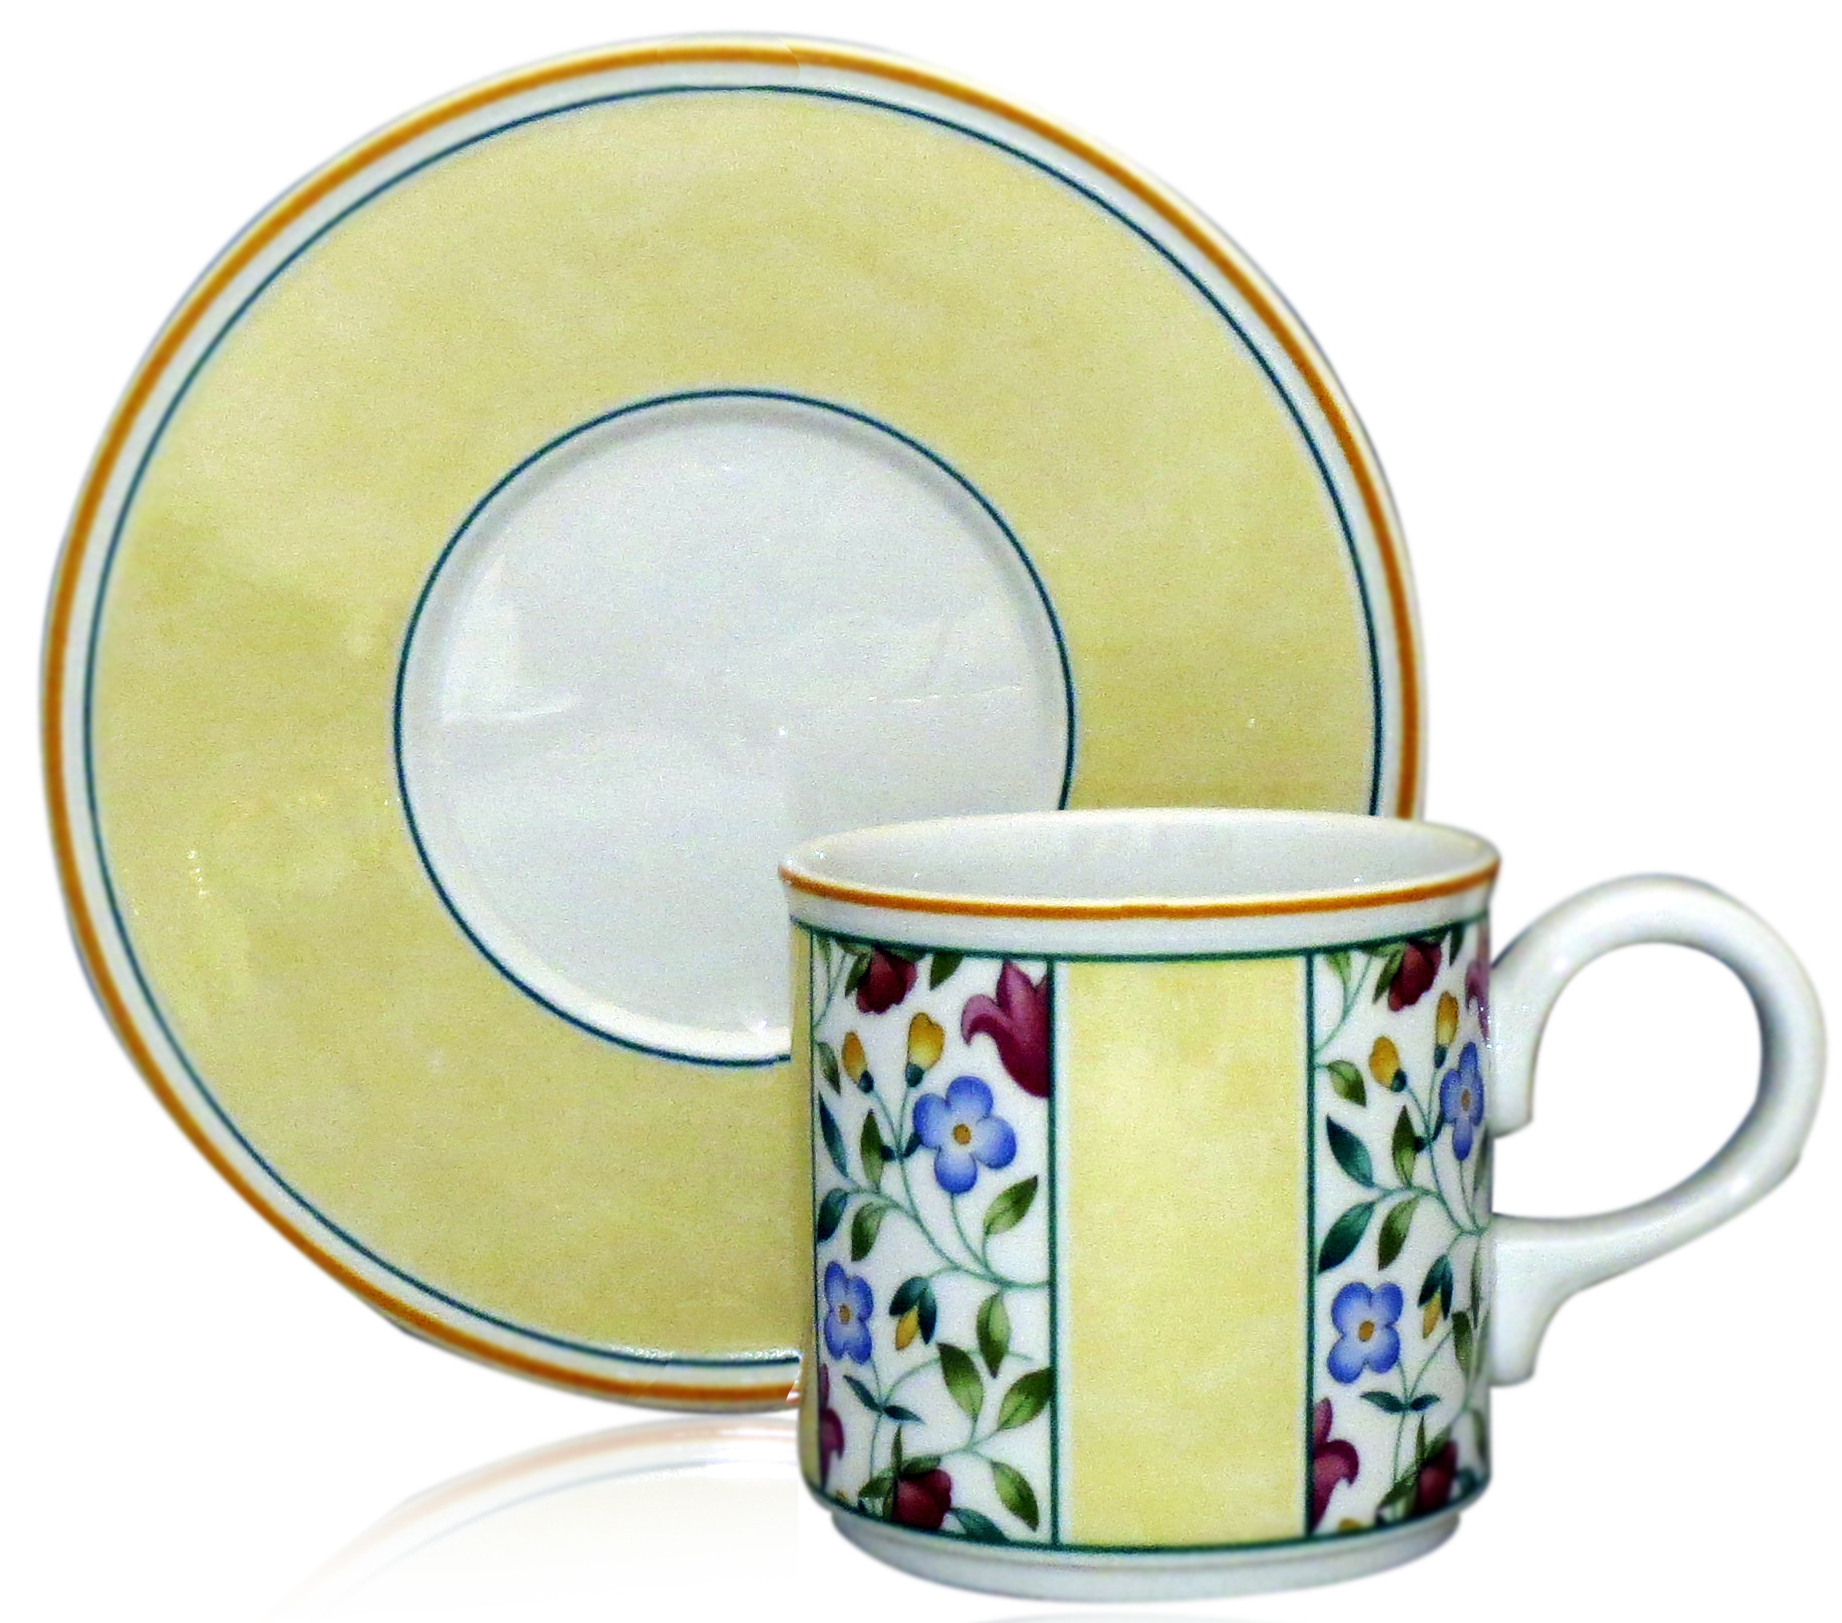 villeroy boch virginia flat cup saucer set. Black Bedroom Furniture Sets. Home Design Ideas